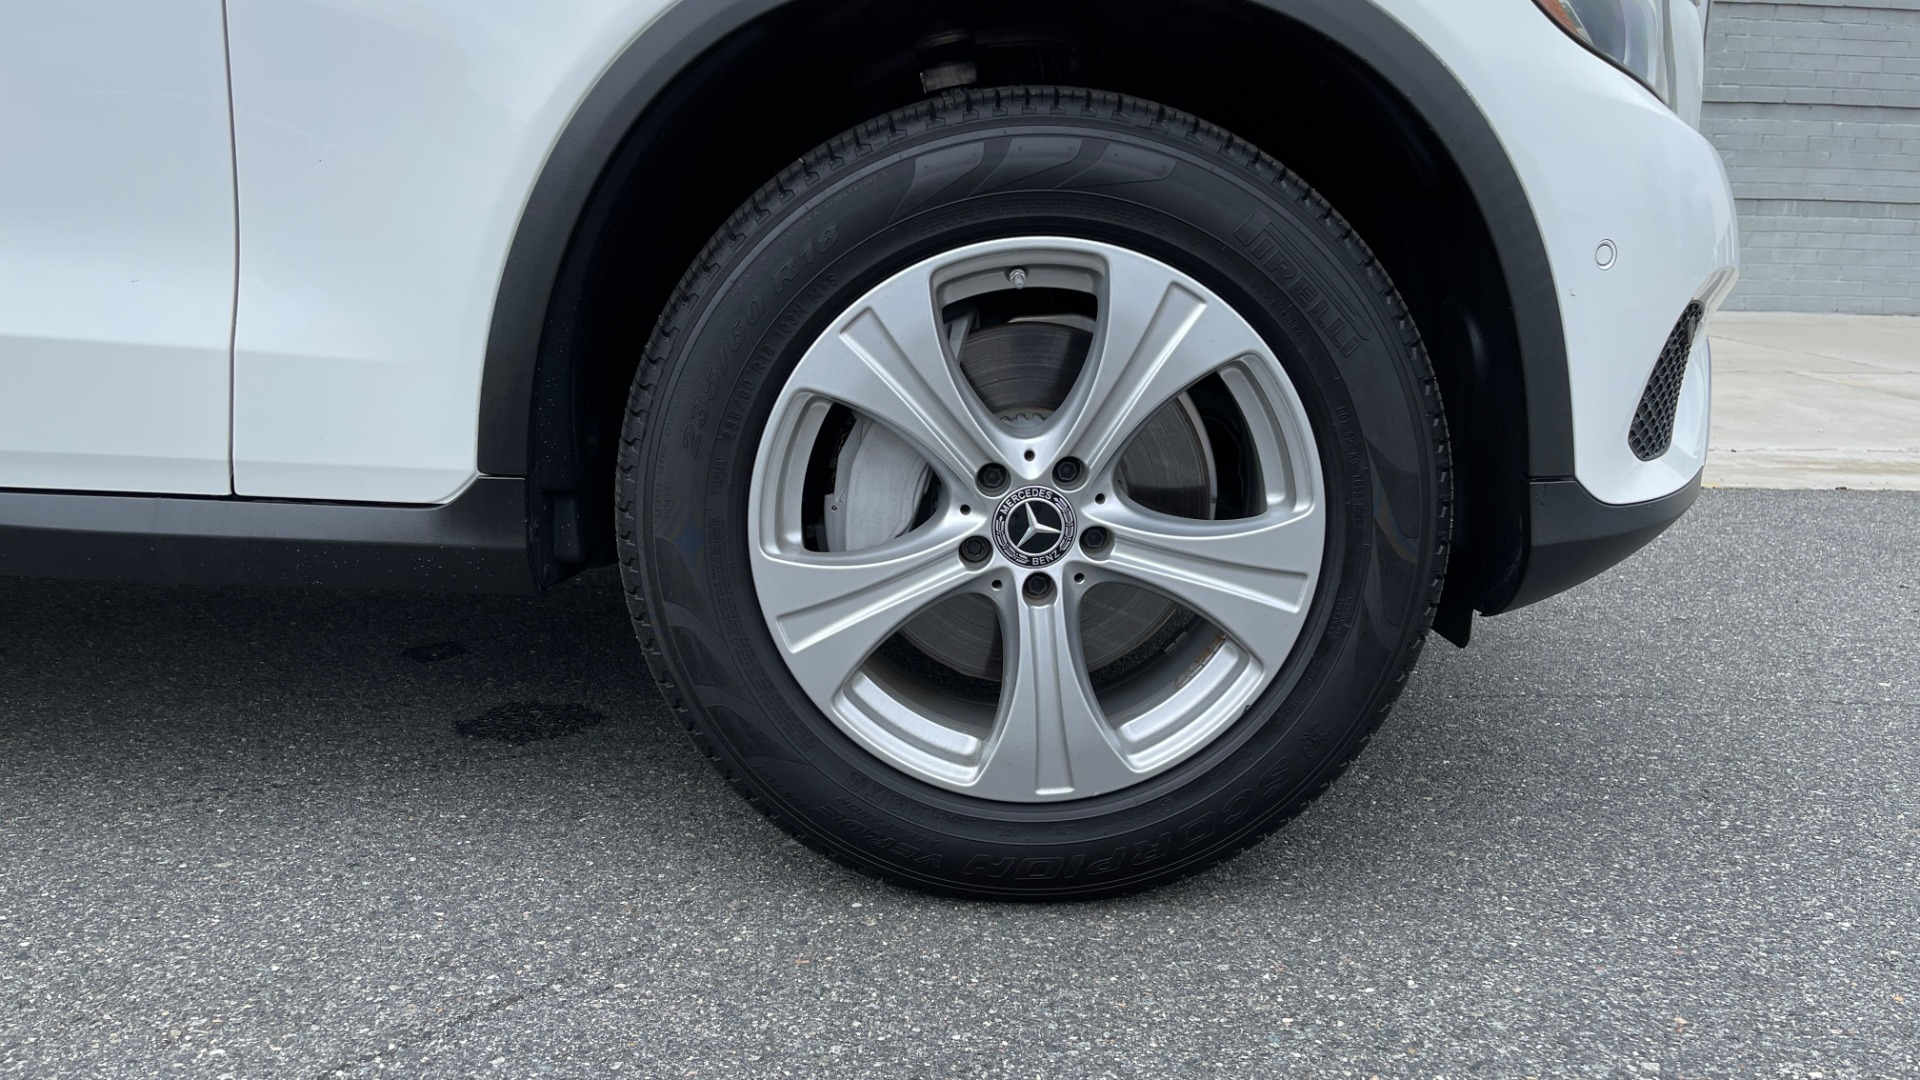 Used 2018 Mercedes-Benz GLC 300 PREMIUM / PANO-ROOF / HTD STS / PARK ASST / REARVIEW for sale $34,613 at Formula Imports in Charlotte NC 28227 61